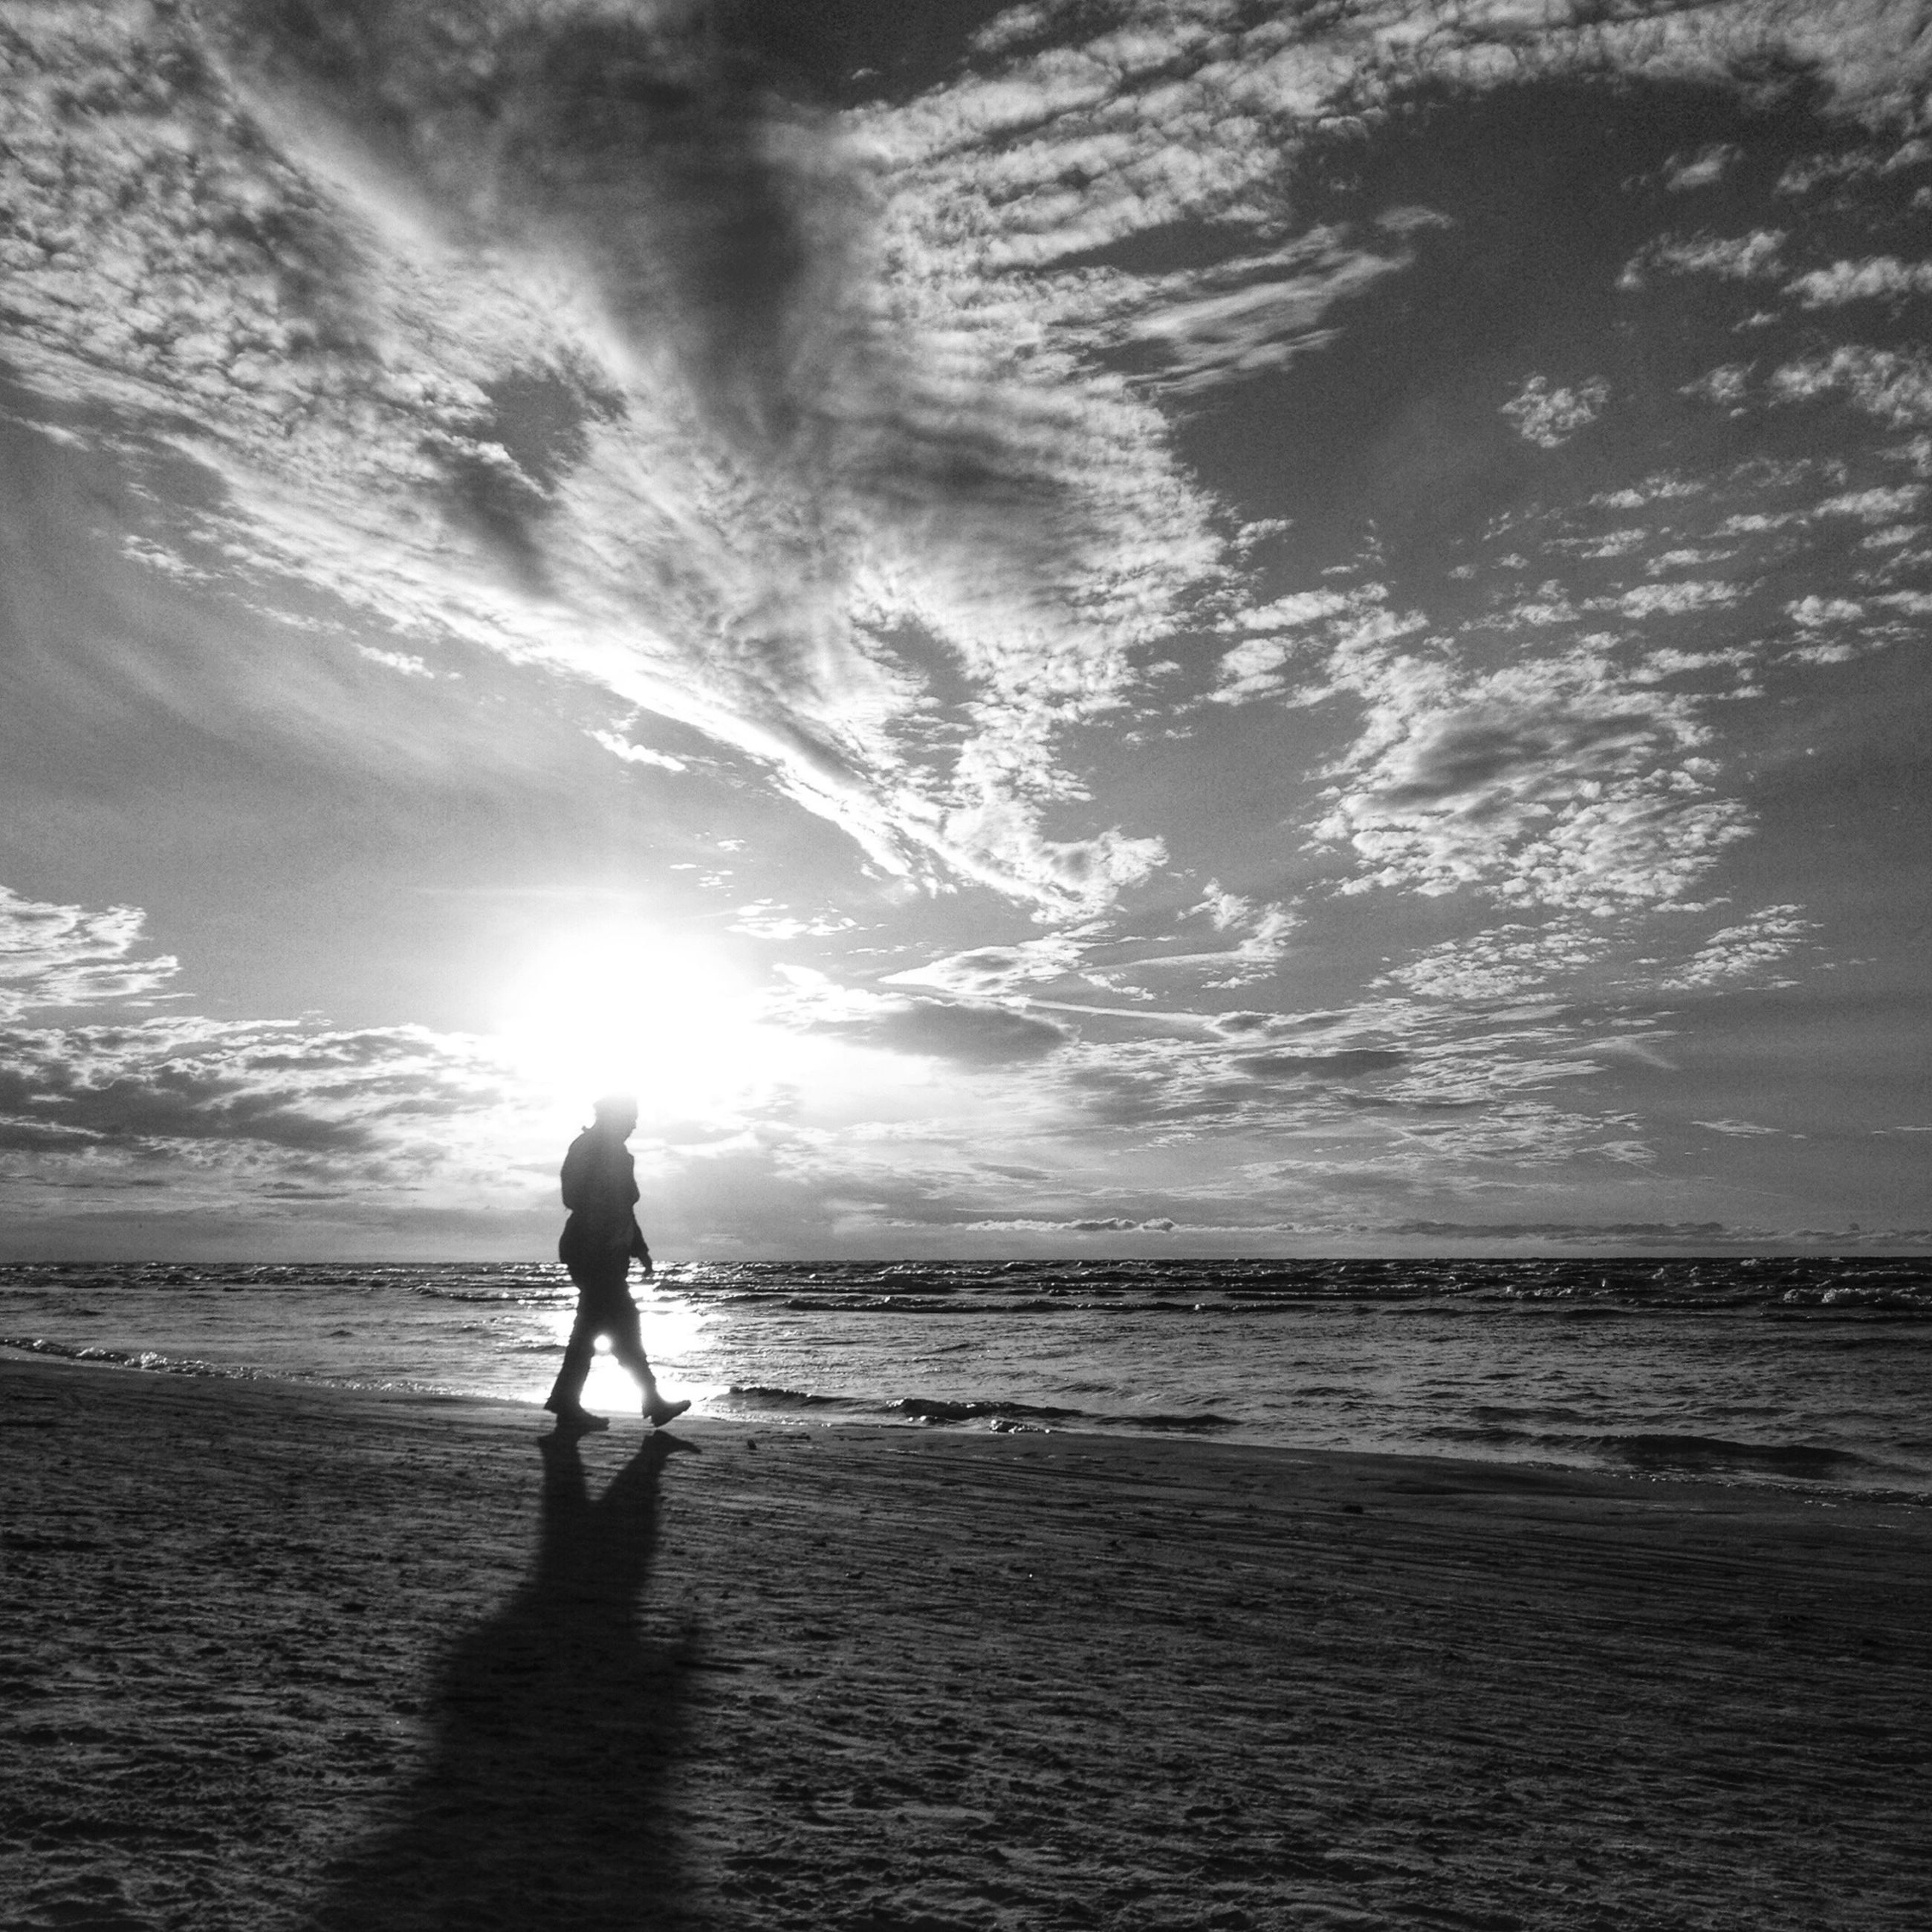 sea, water, horizon over water, beach, sky, silhouette, leisure activity, lifestyles, shore, full length, tranquil scene, tranquility, scenics, standing, beauty in nature, nature, cloud - sky